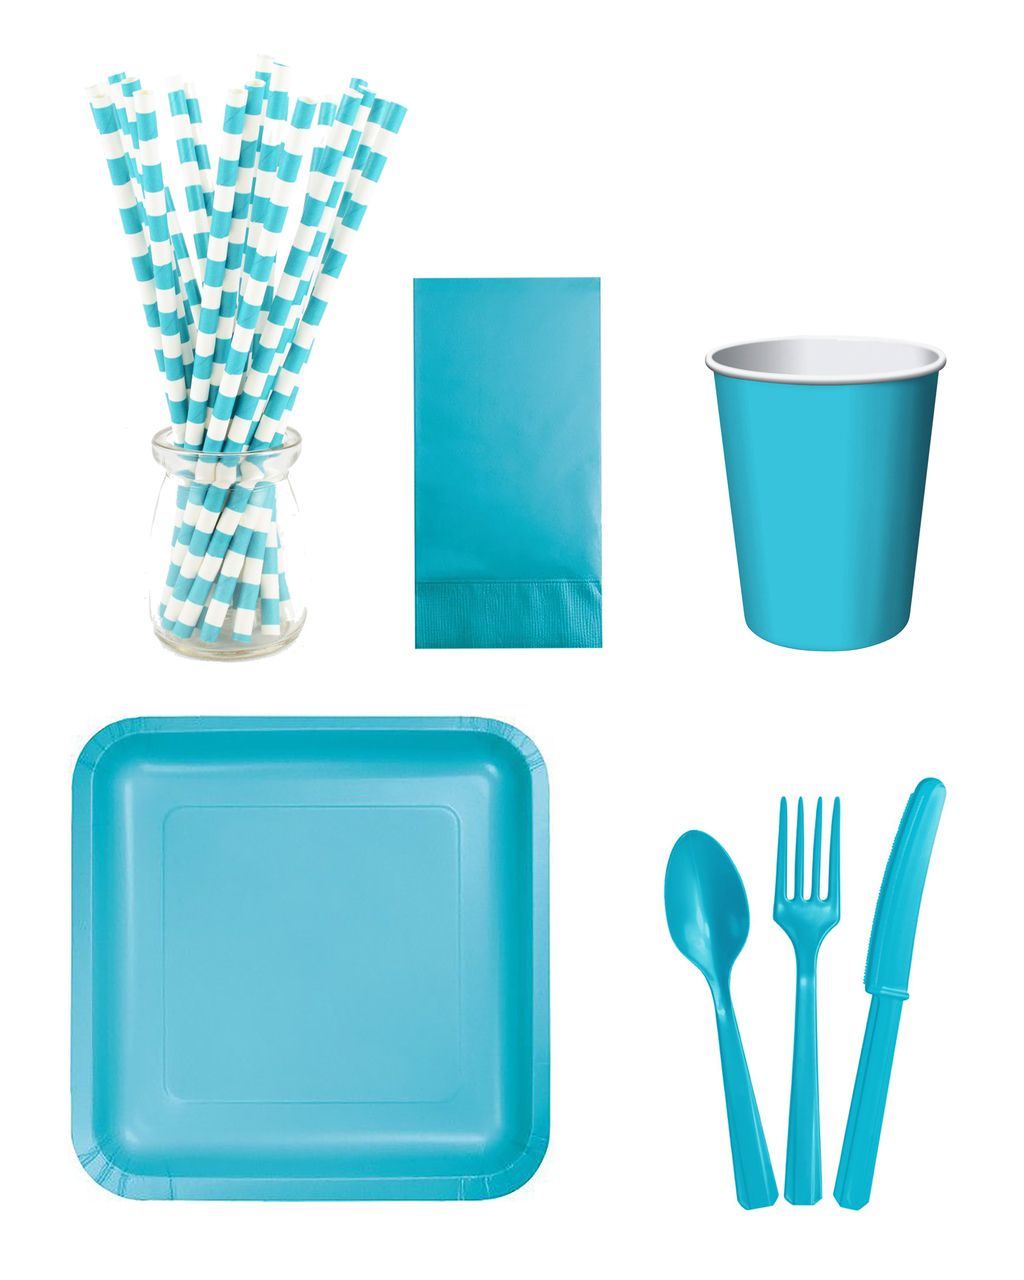 TURQUOISE DIG-IN-DON'T-WAIT-KIT 'Get-Kit-Done' Instant Party Serving Kit - Light & Co